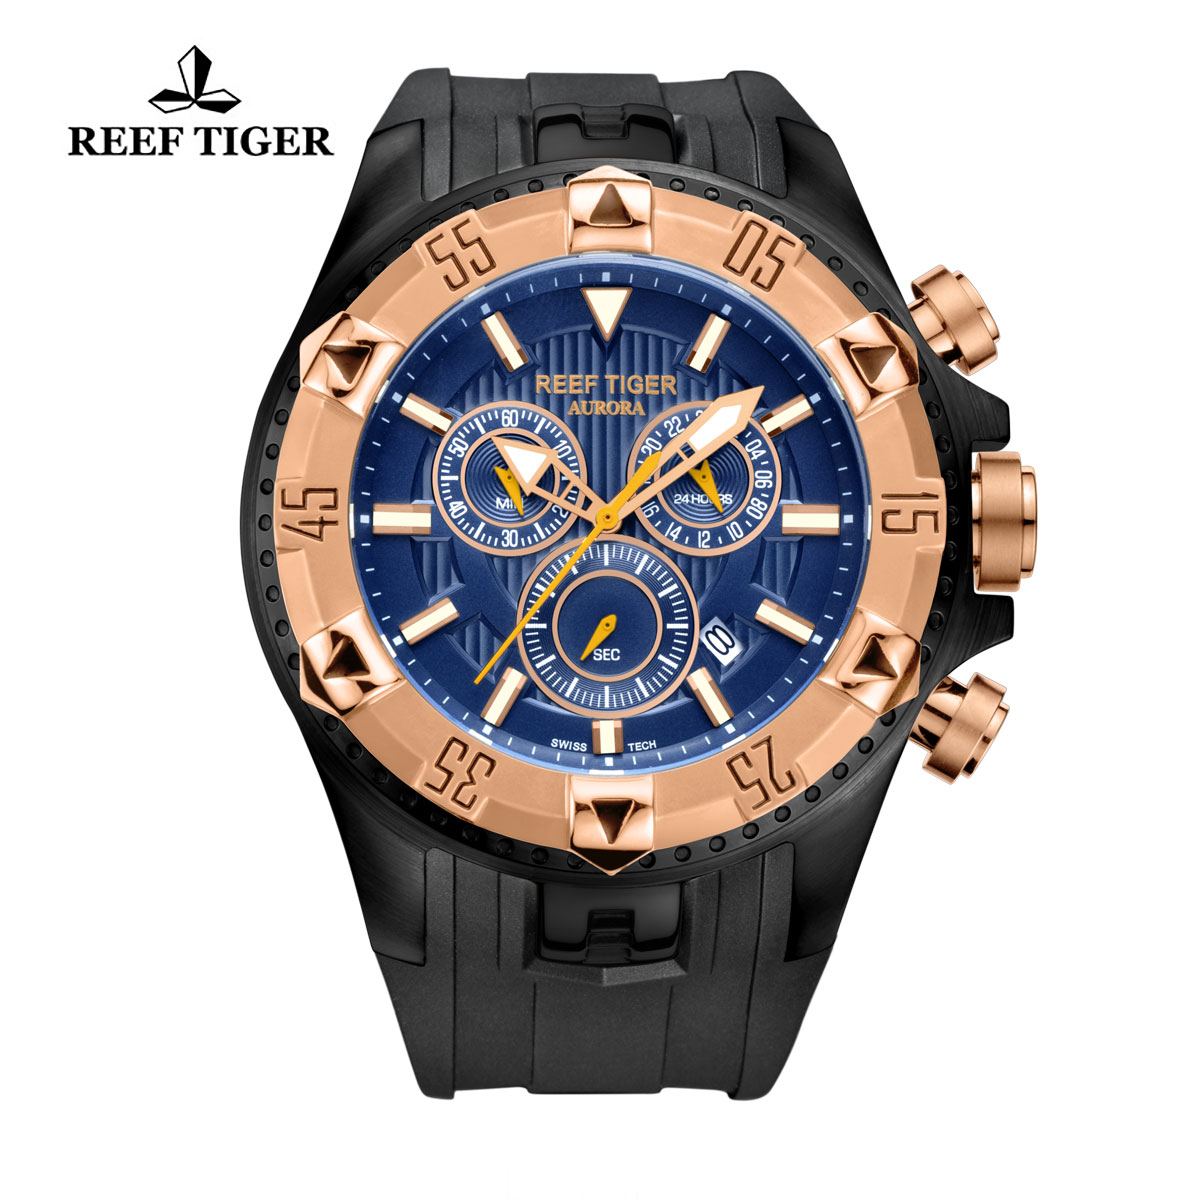 Reef Tiger Hercules Sport Watches Chronograph PVD Case Rose Gold Bezel Blue Dial Watch RGA303-PLB